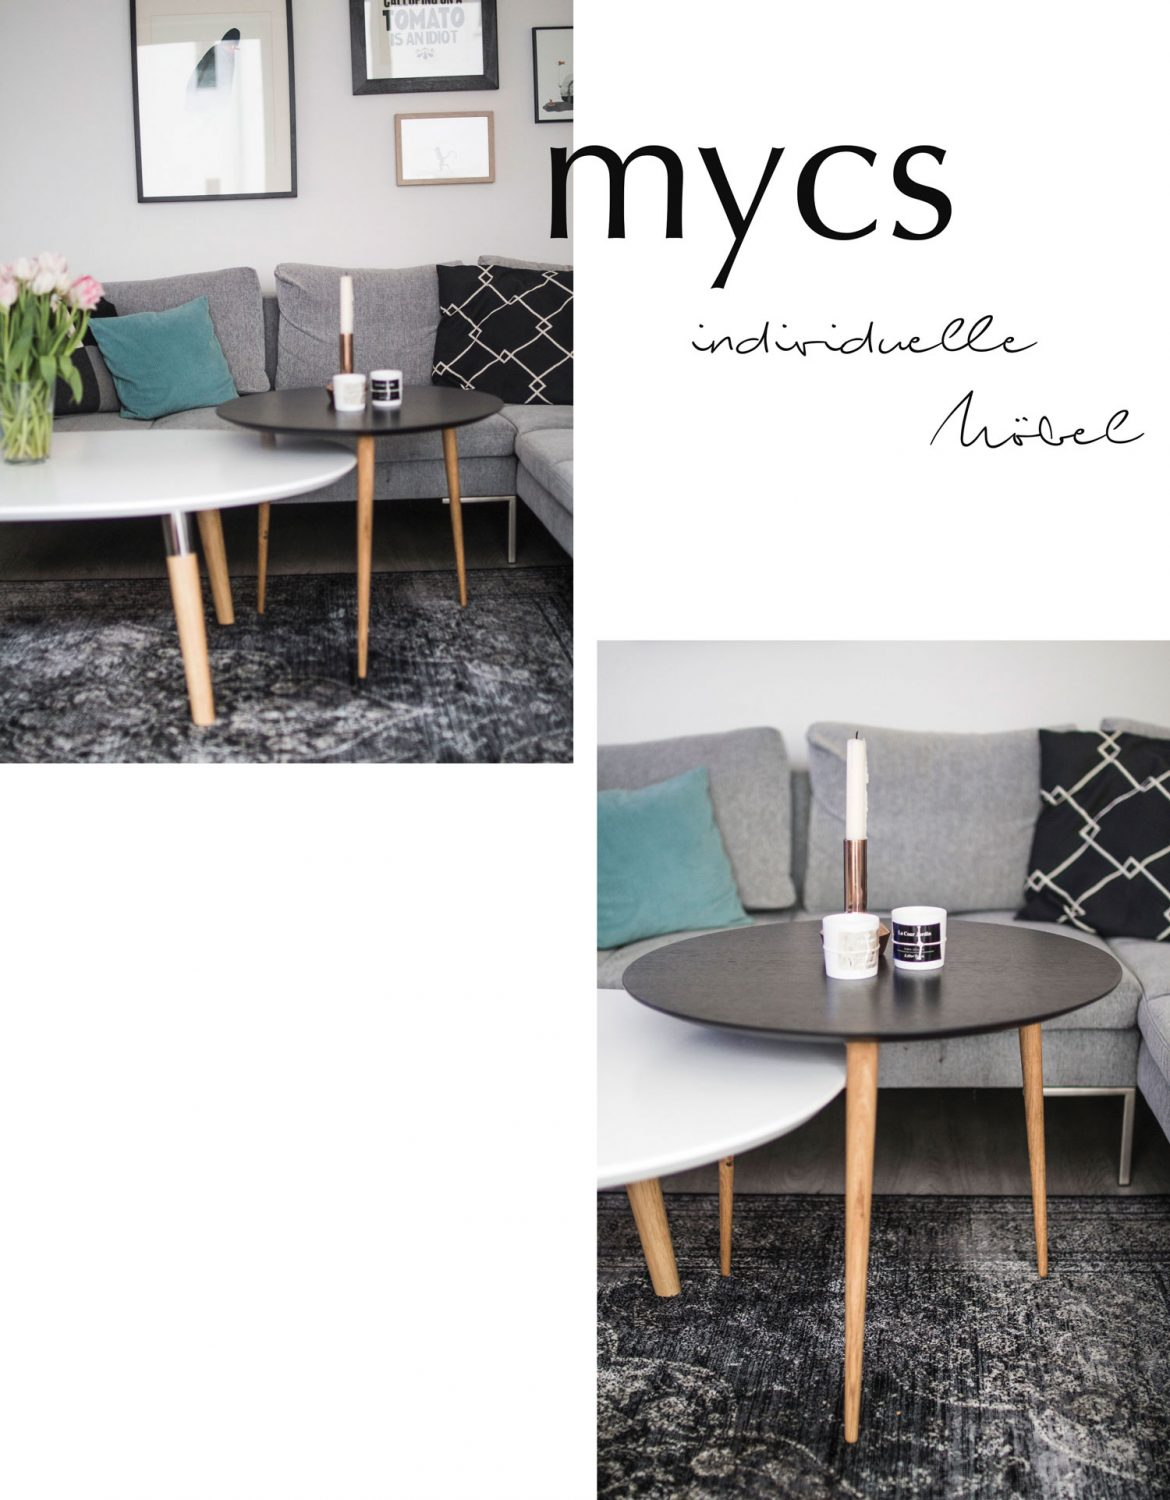 Living Style Couchtisch Mycs Couchtisch Design Interior Moebel Home Living Style Blog